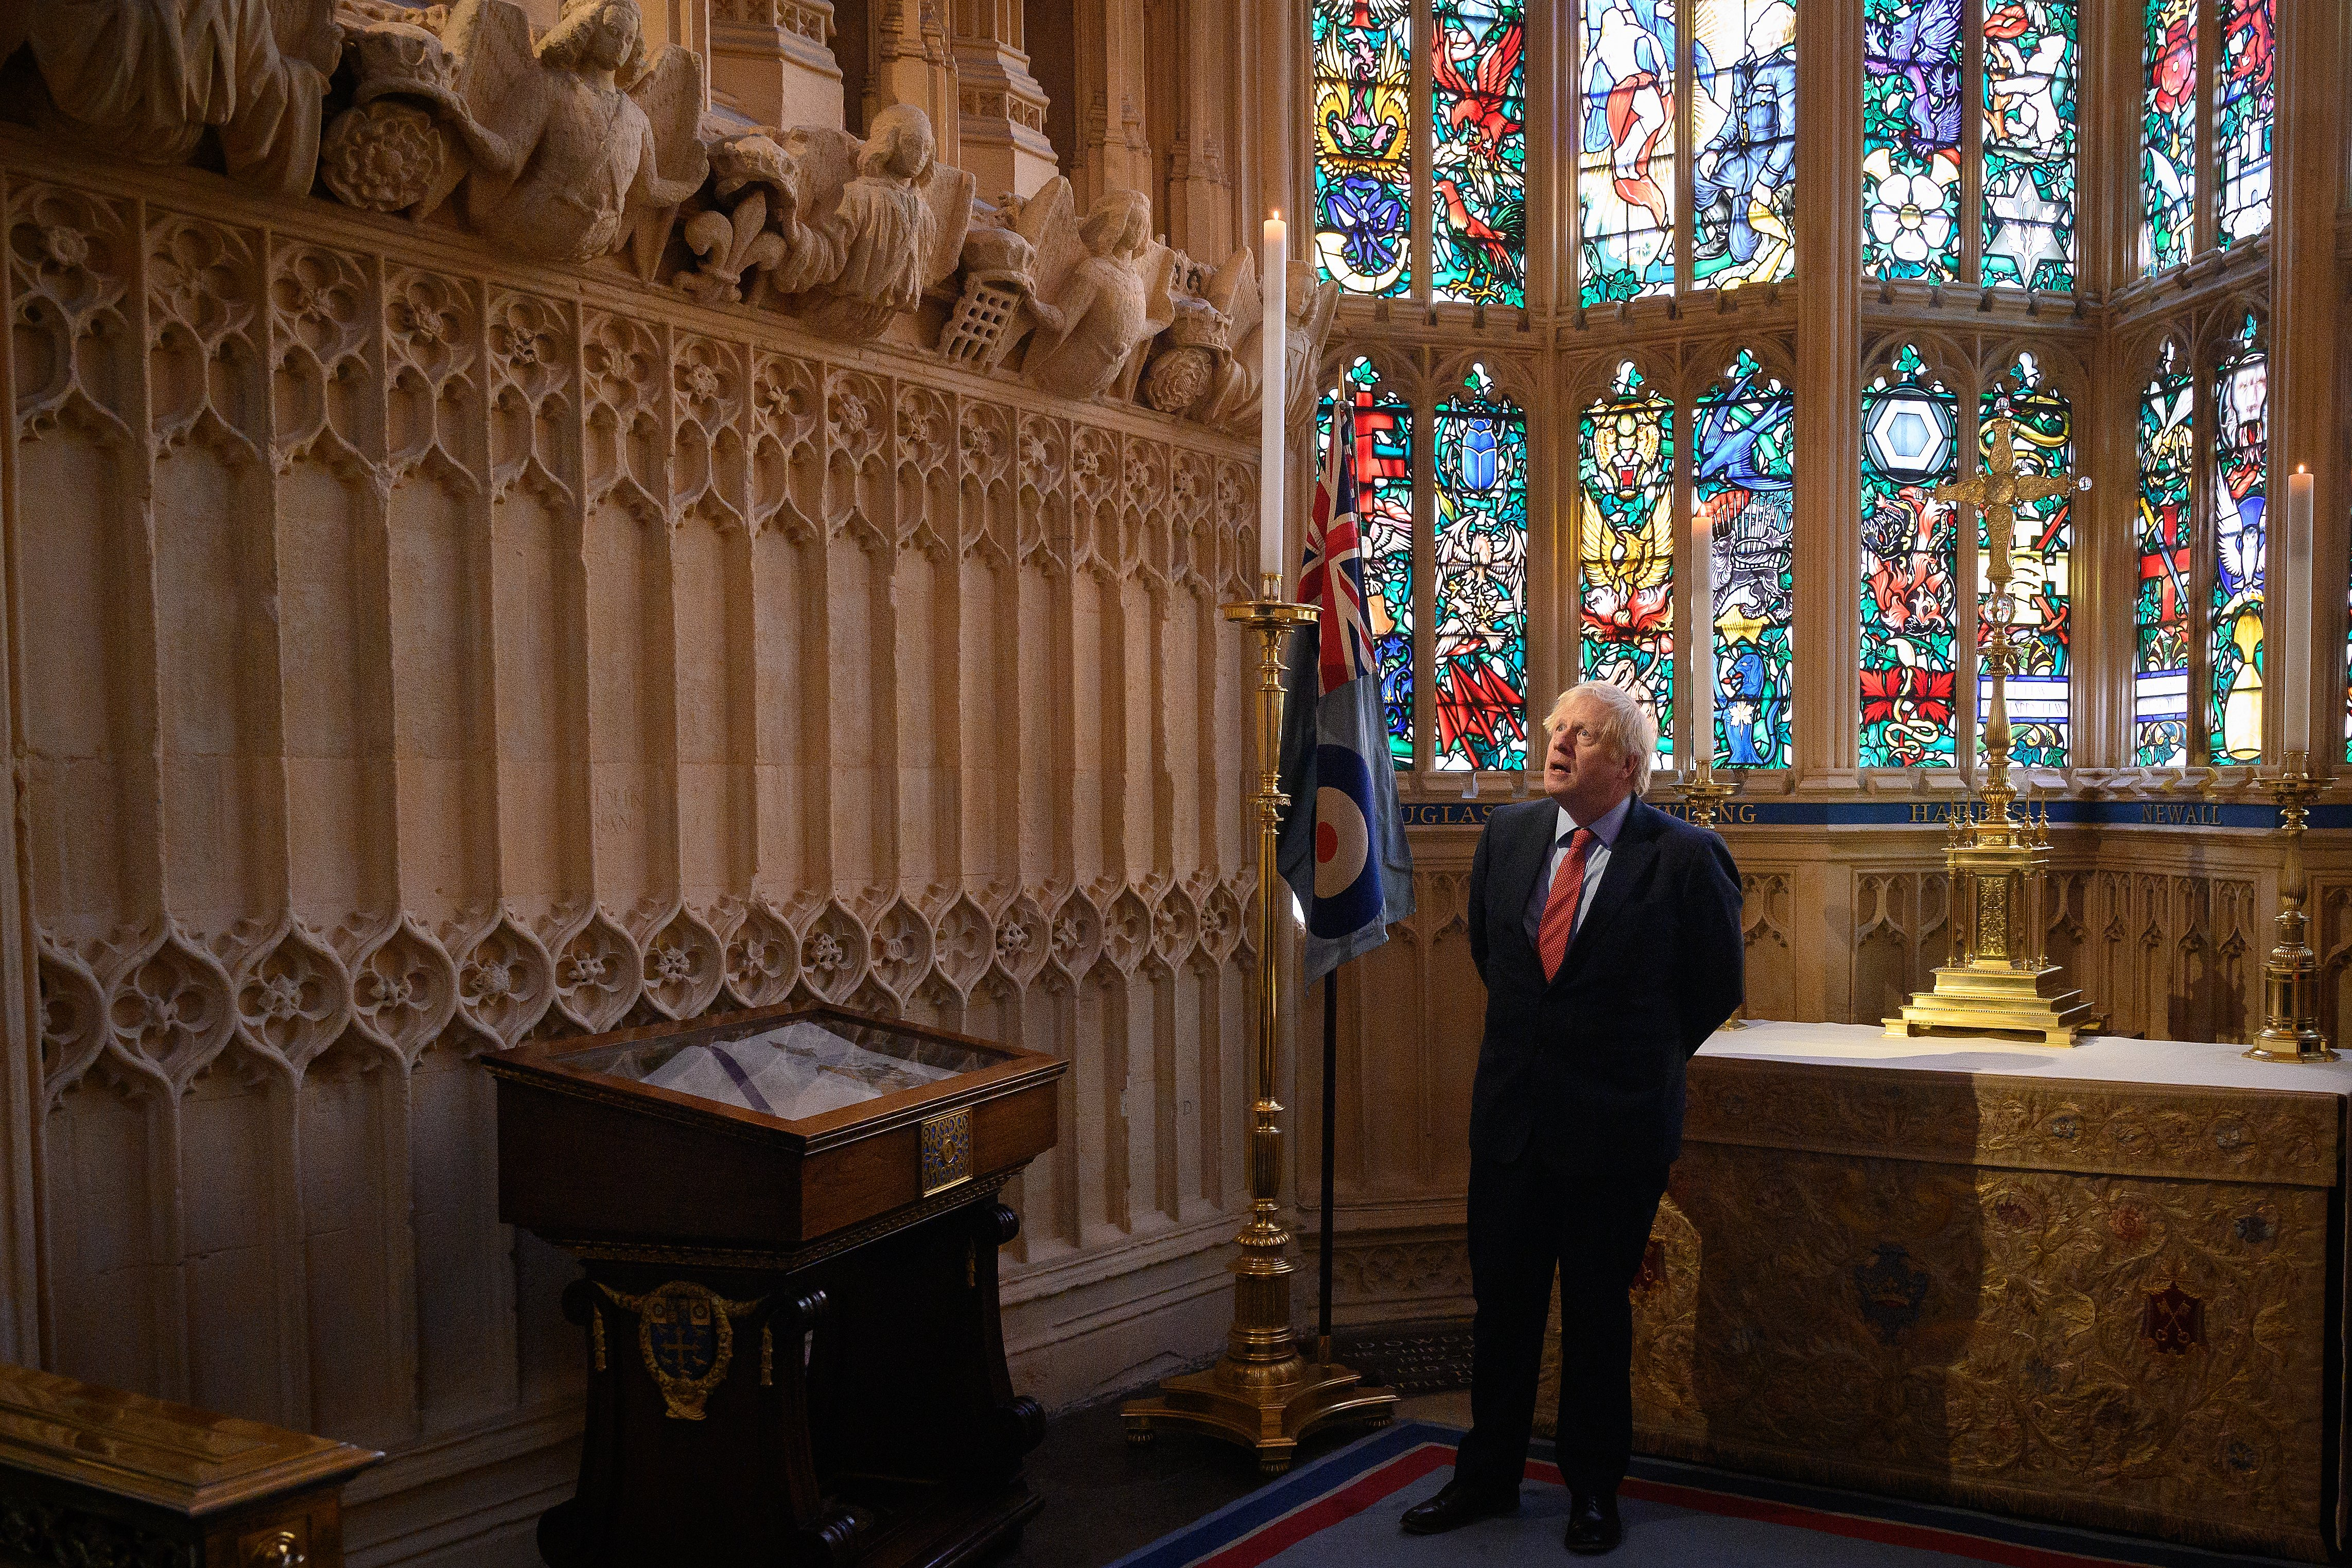 Boris Johnson pays respects at Westminster Abbey ahead of VE Day celebrations